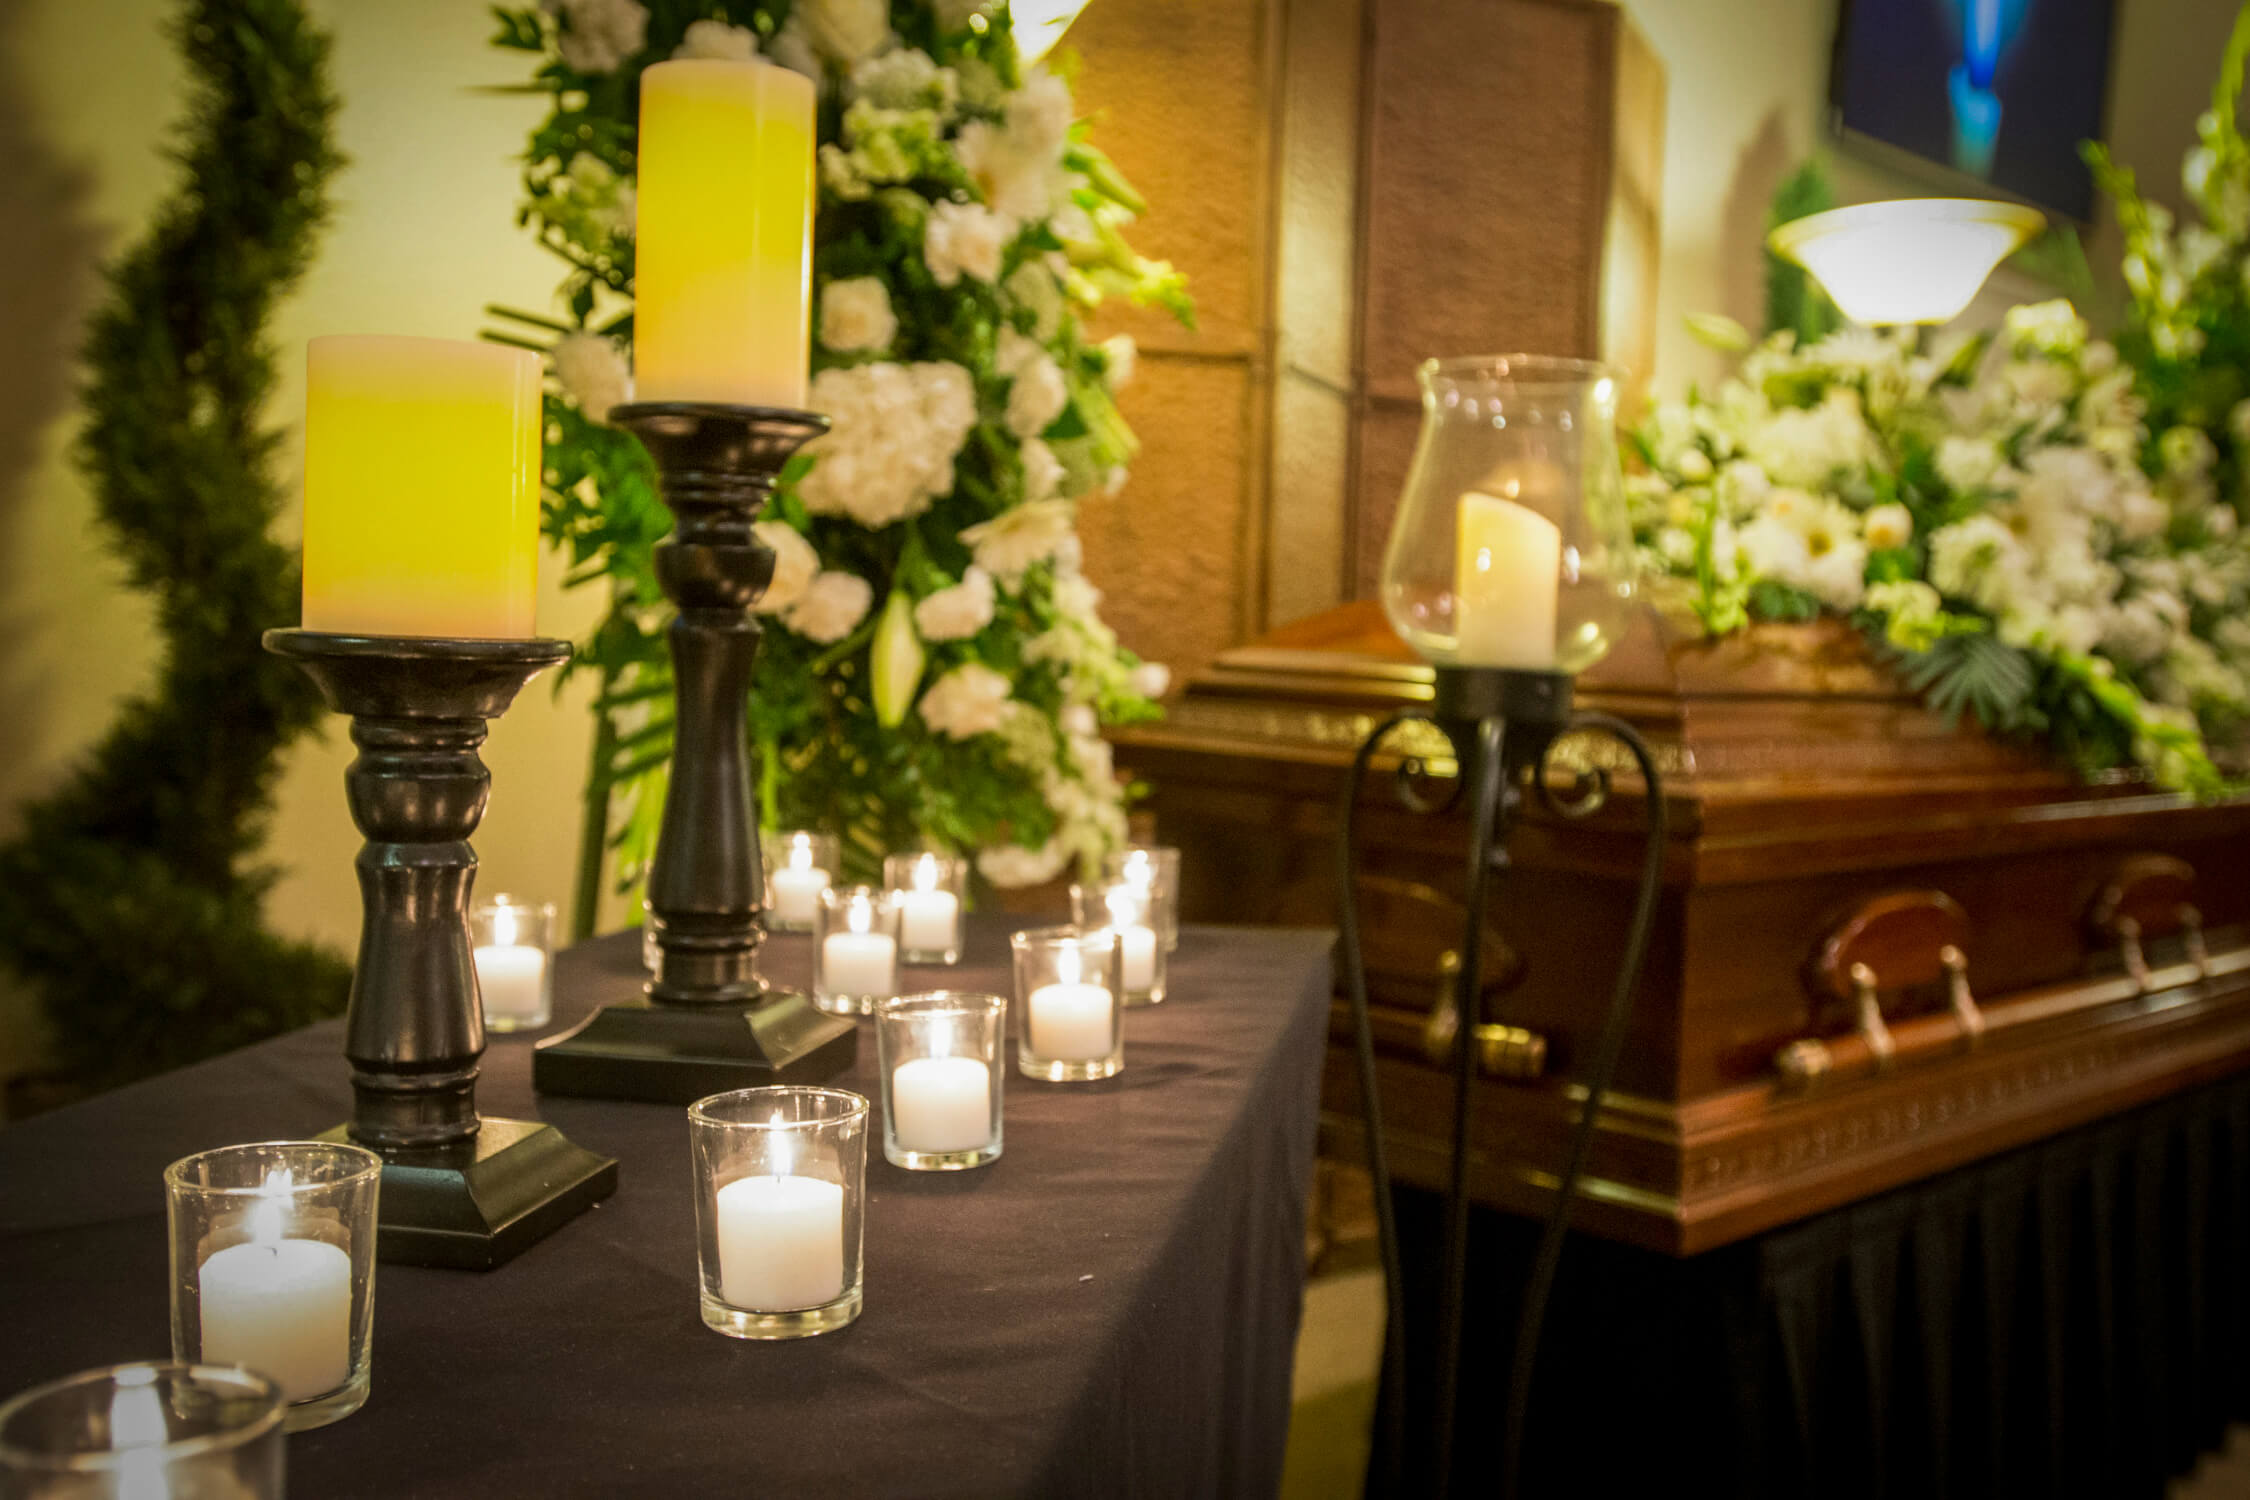 Franklin downs funeral home mchenry chapel modesto ca funeral send flowers izmirmasajfo